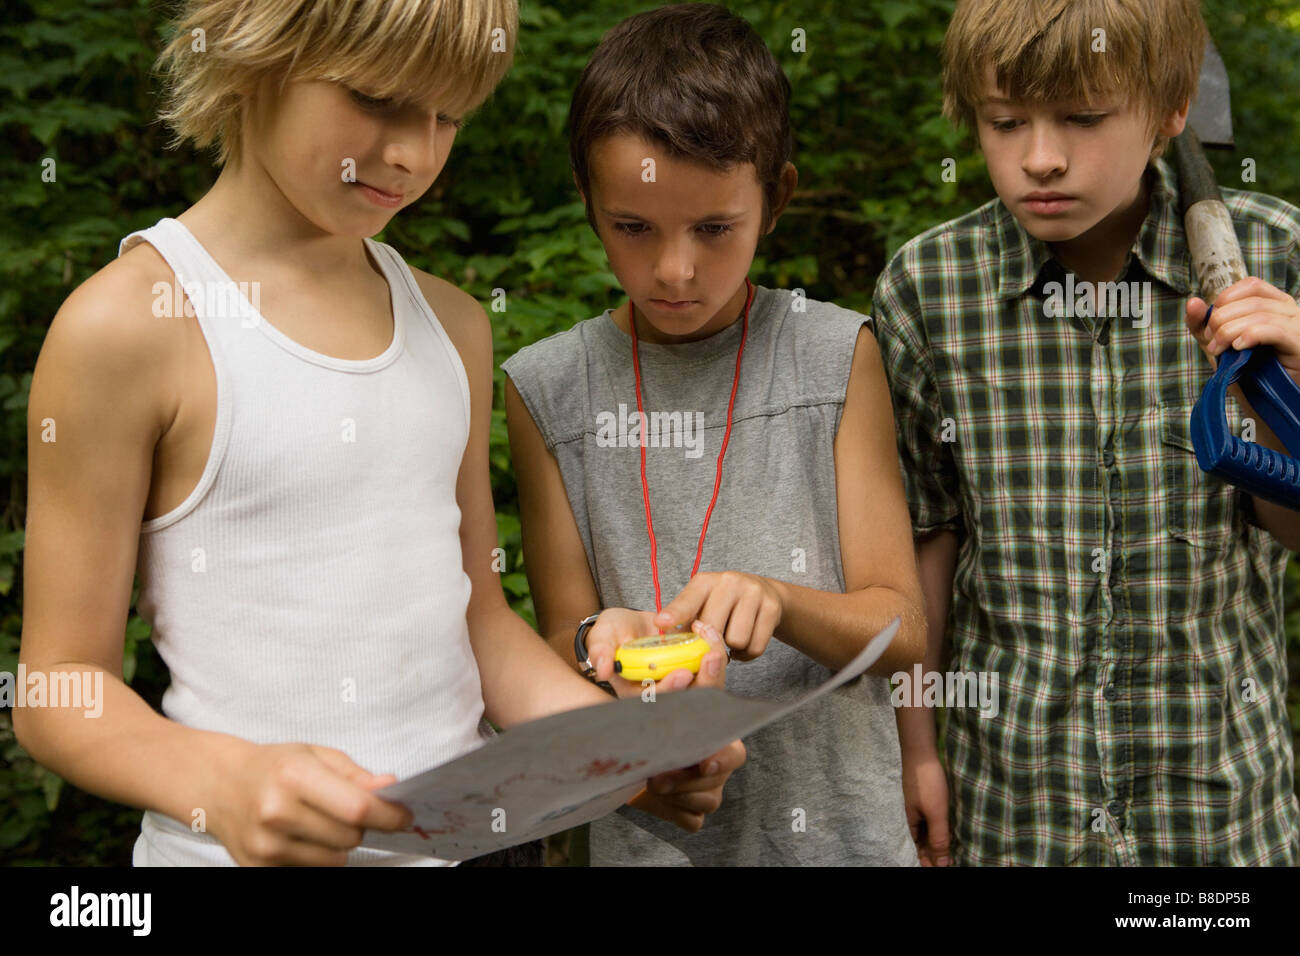 Boys with map - Stock Image